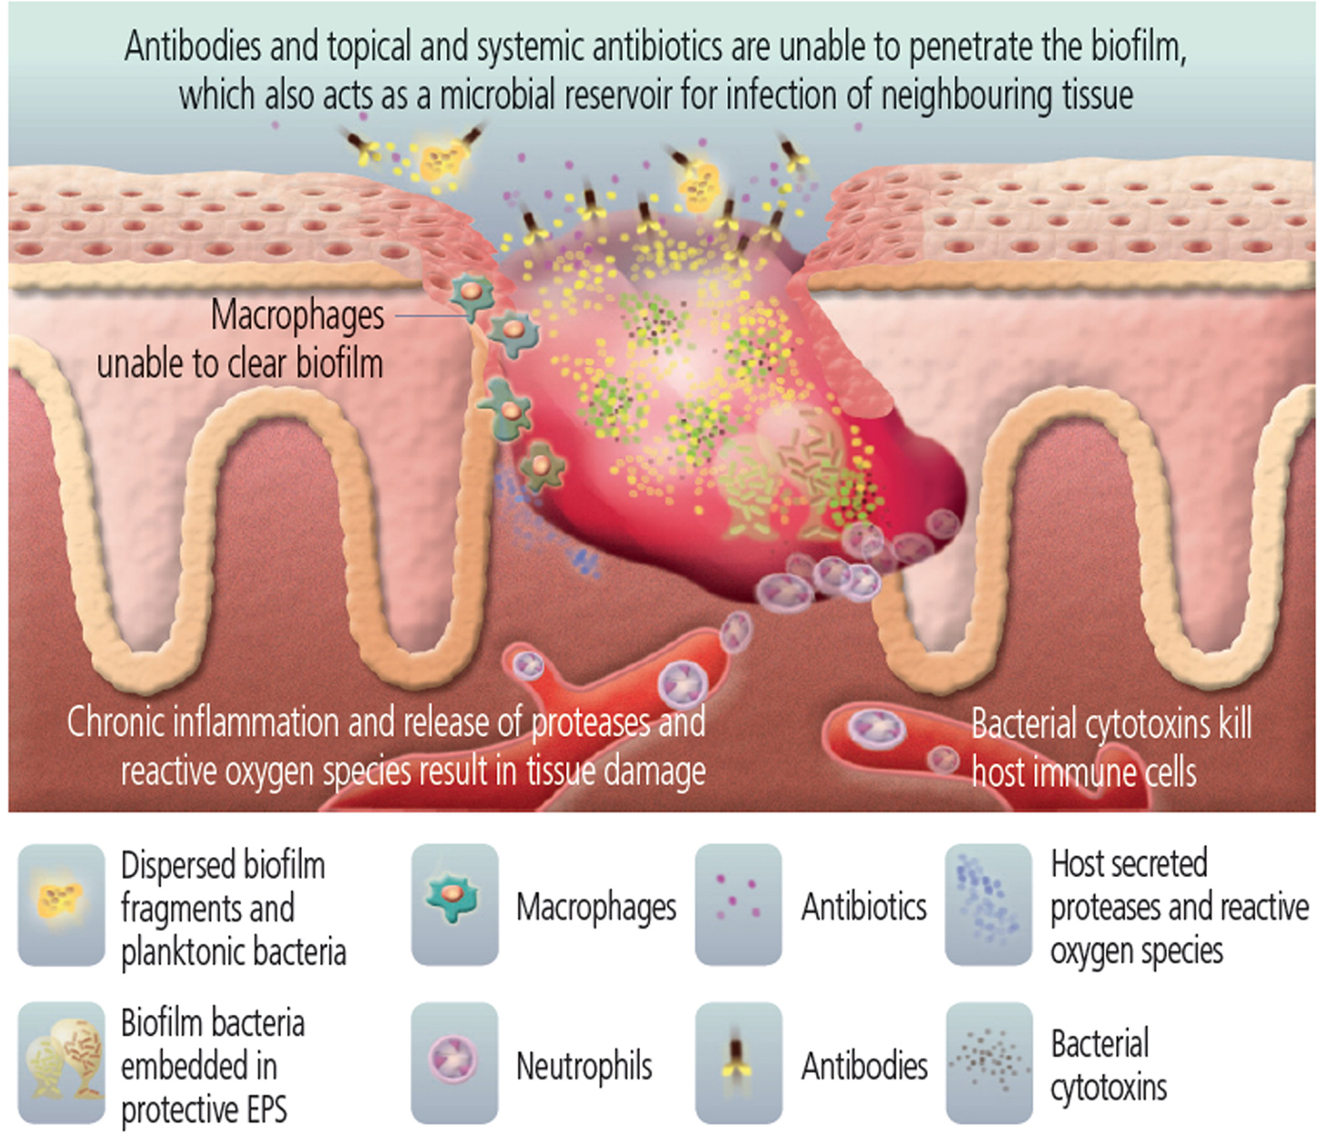 frontiers the human cathelicidin antimicrobial peptide Unstageable Pressure Ulcer Unstageable Pressure Ulcer